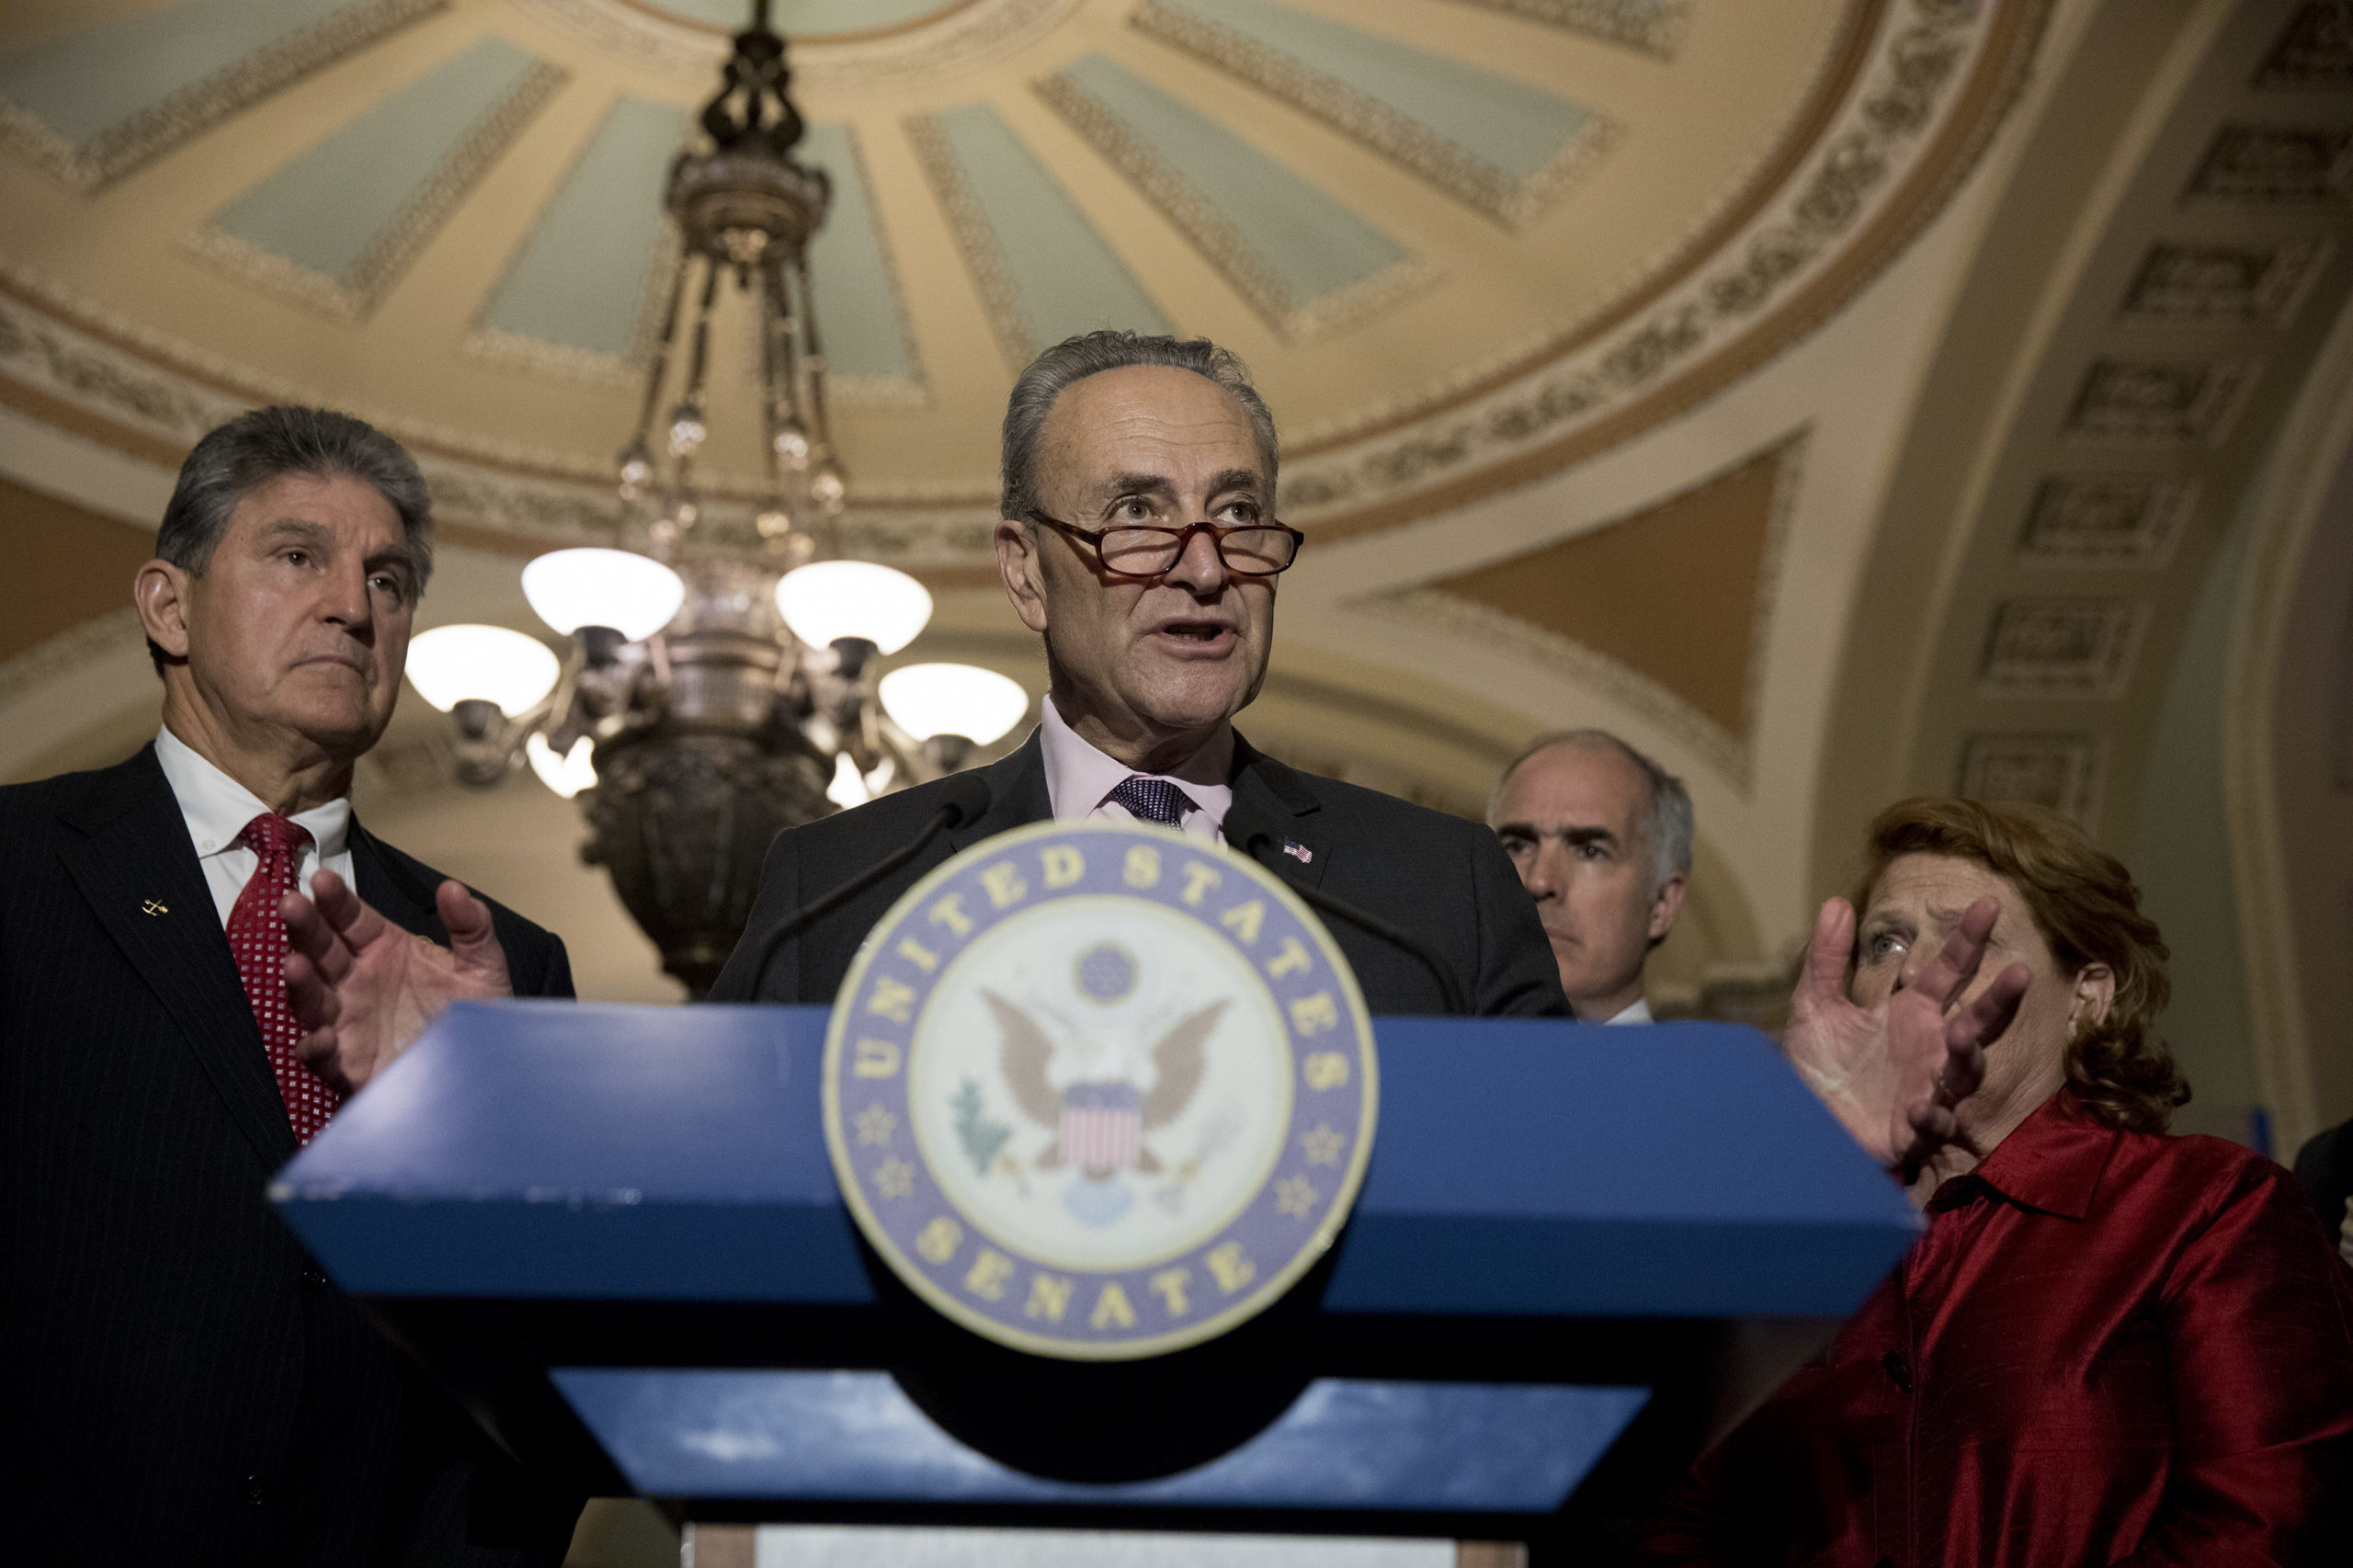 Sen. Chuck Schumer with Sen. Joe Manchin, two Democrats at the center of the clash over the For the People Act. (Photo by Aaron P. Bernstein/Getty Images)